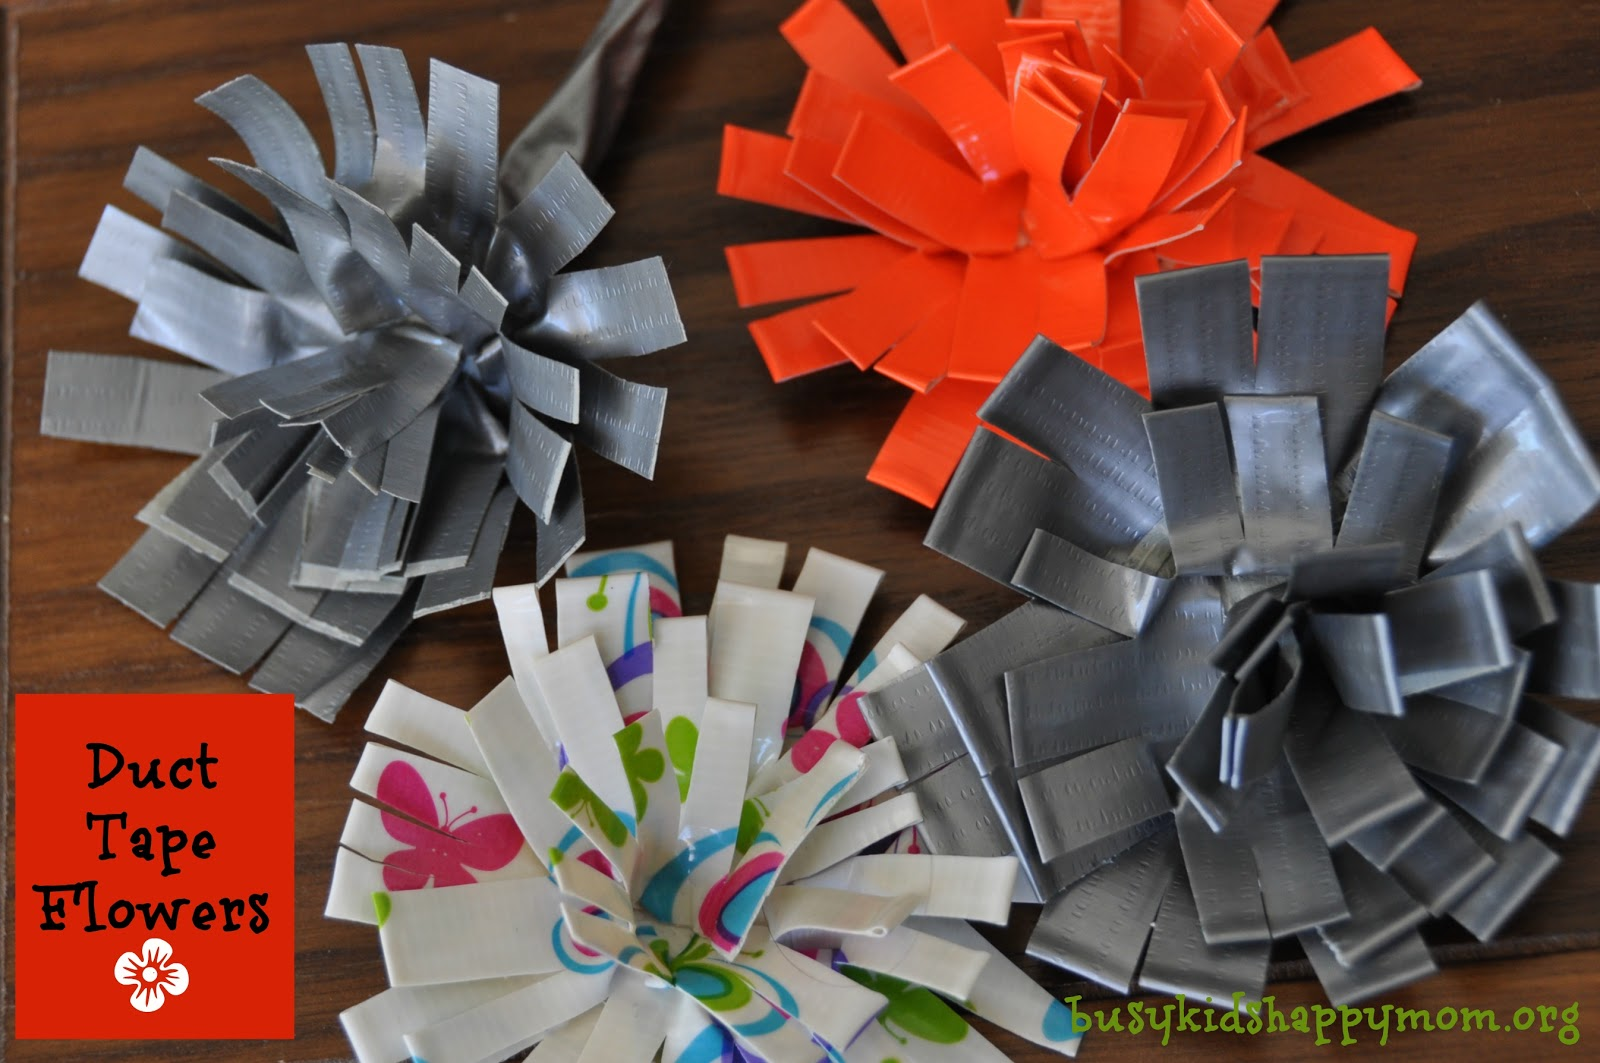 duct tape projects From finger-puppet crafts to book cover projects to repairing a swimming-pool liner, these creative ideas prove that duct tape is indispensable.